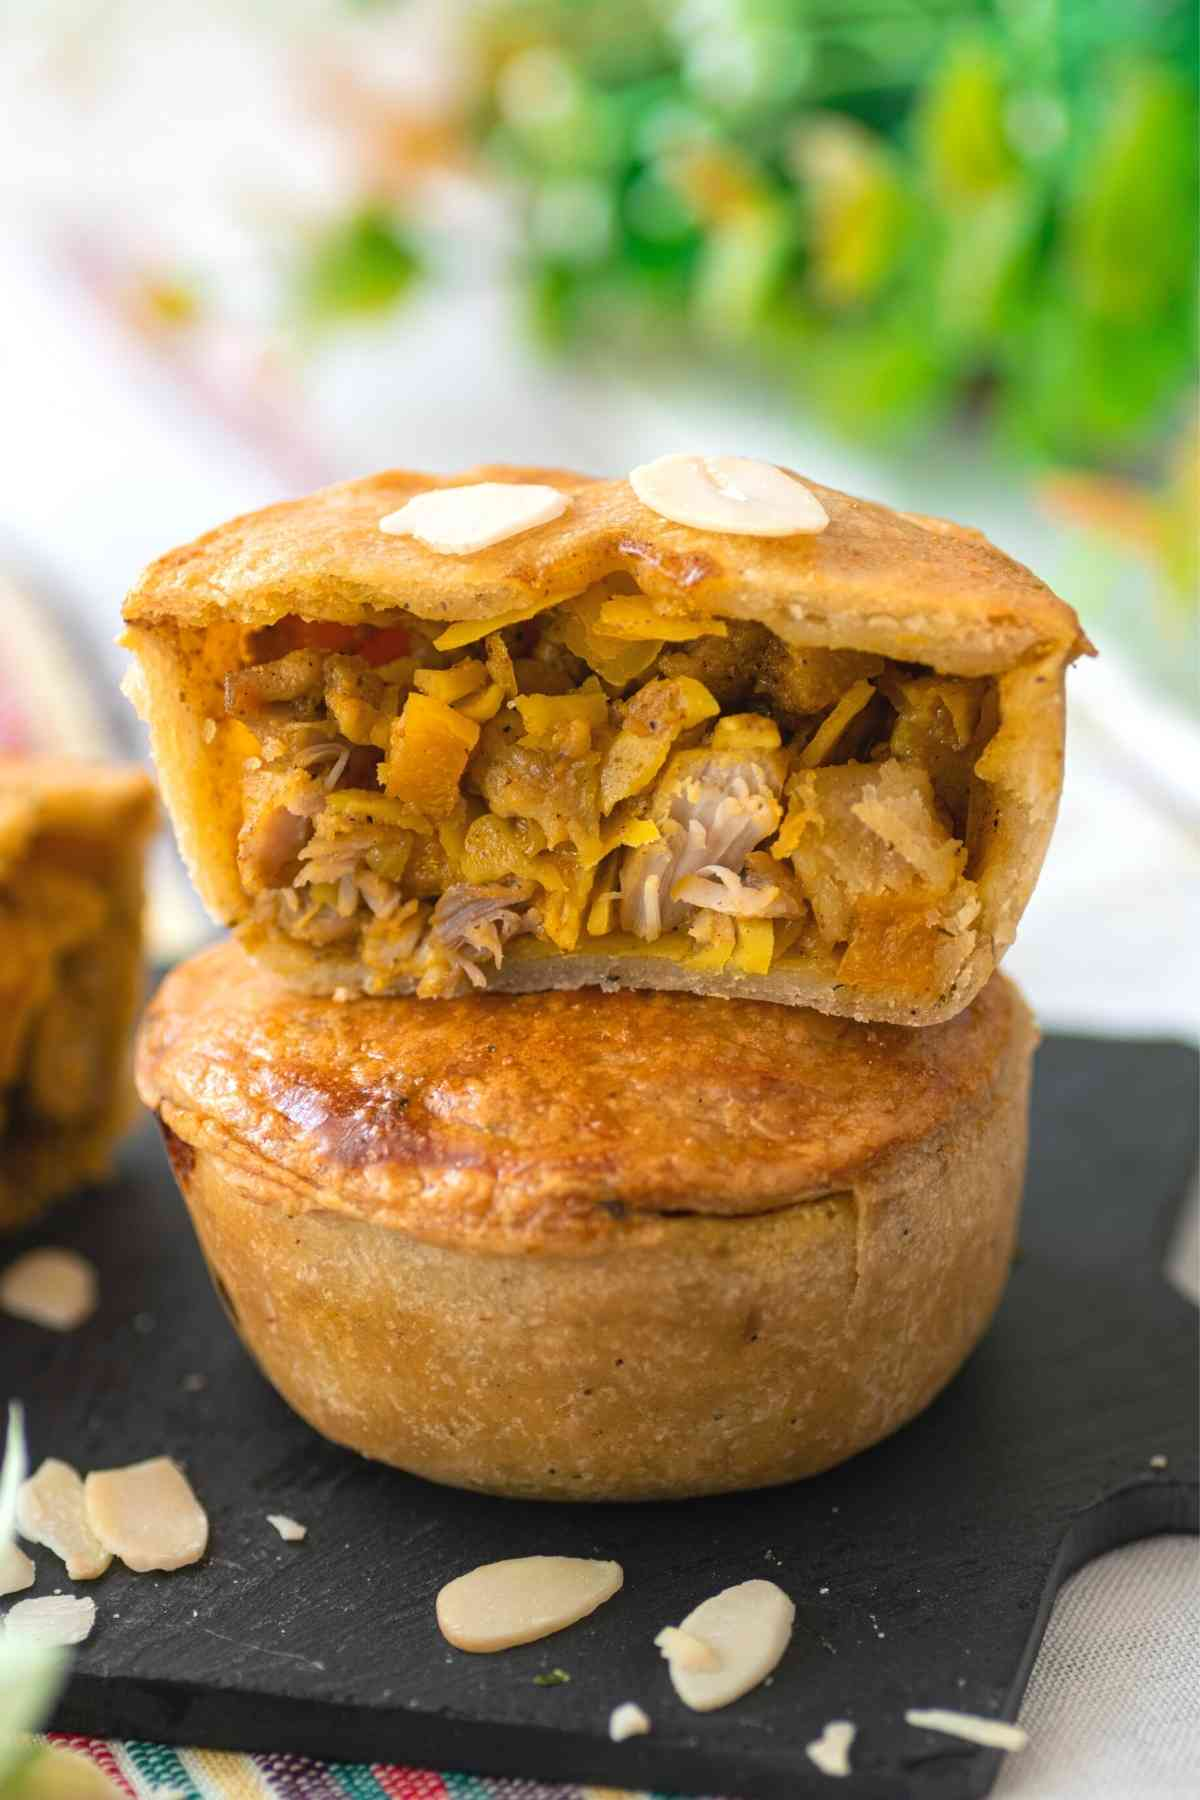 Cross section of Moroccan chicken pie showing filling